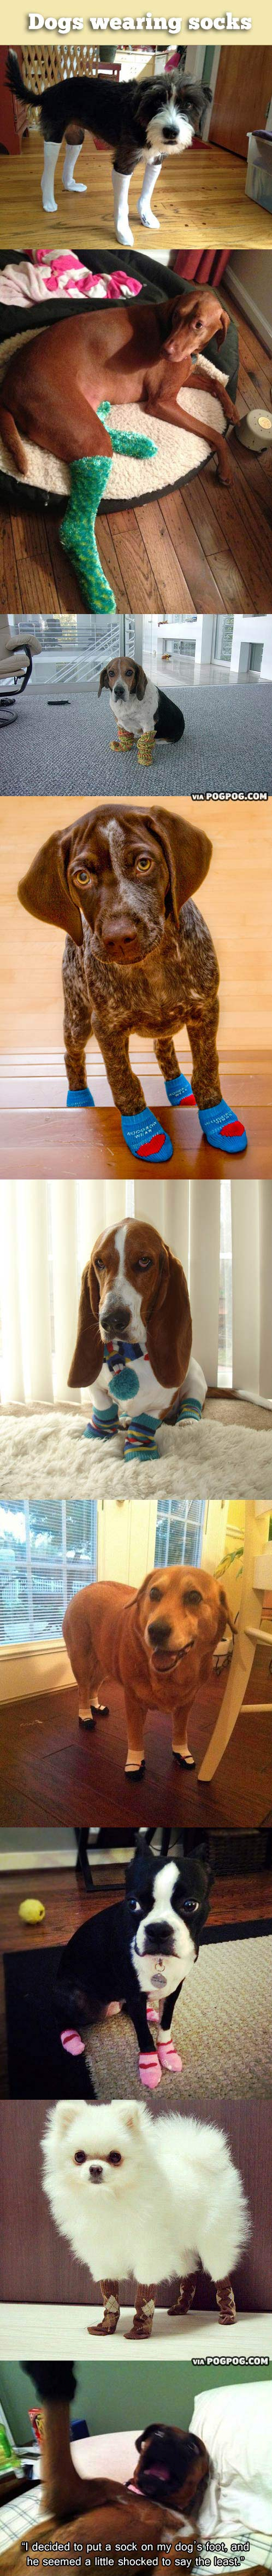 Dogs wearing socks…